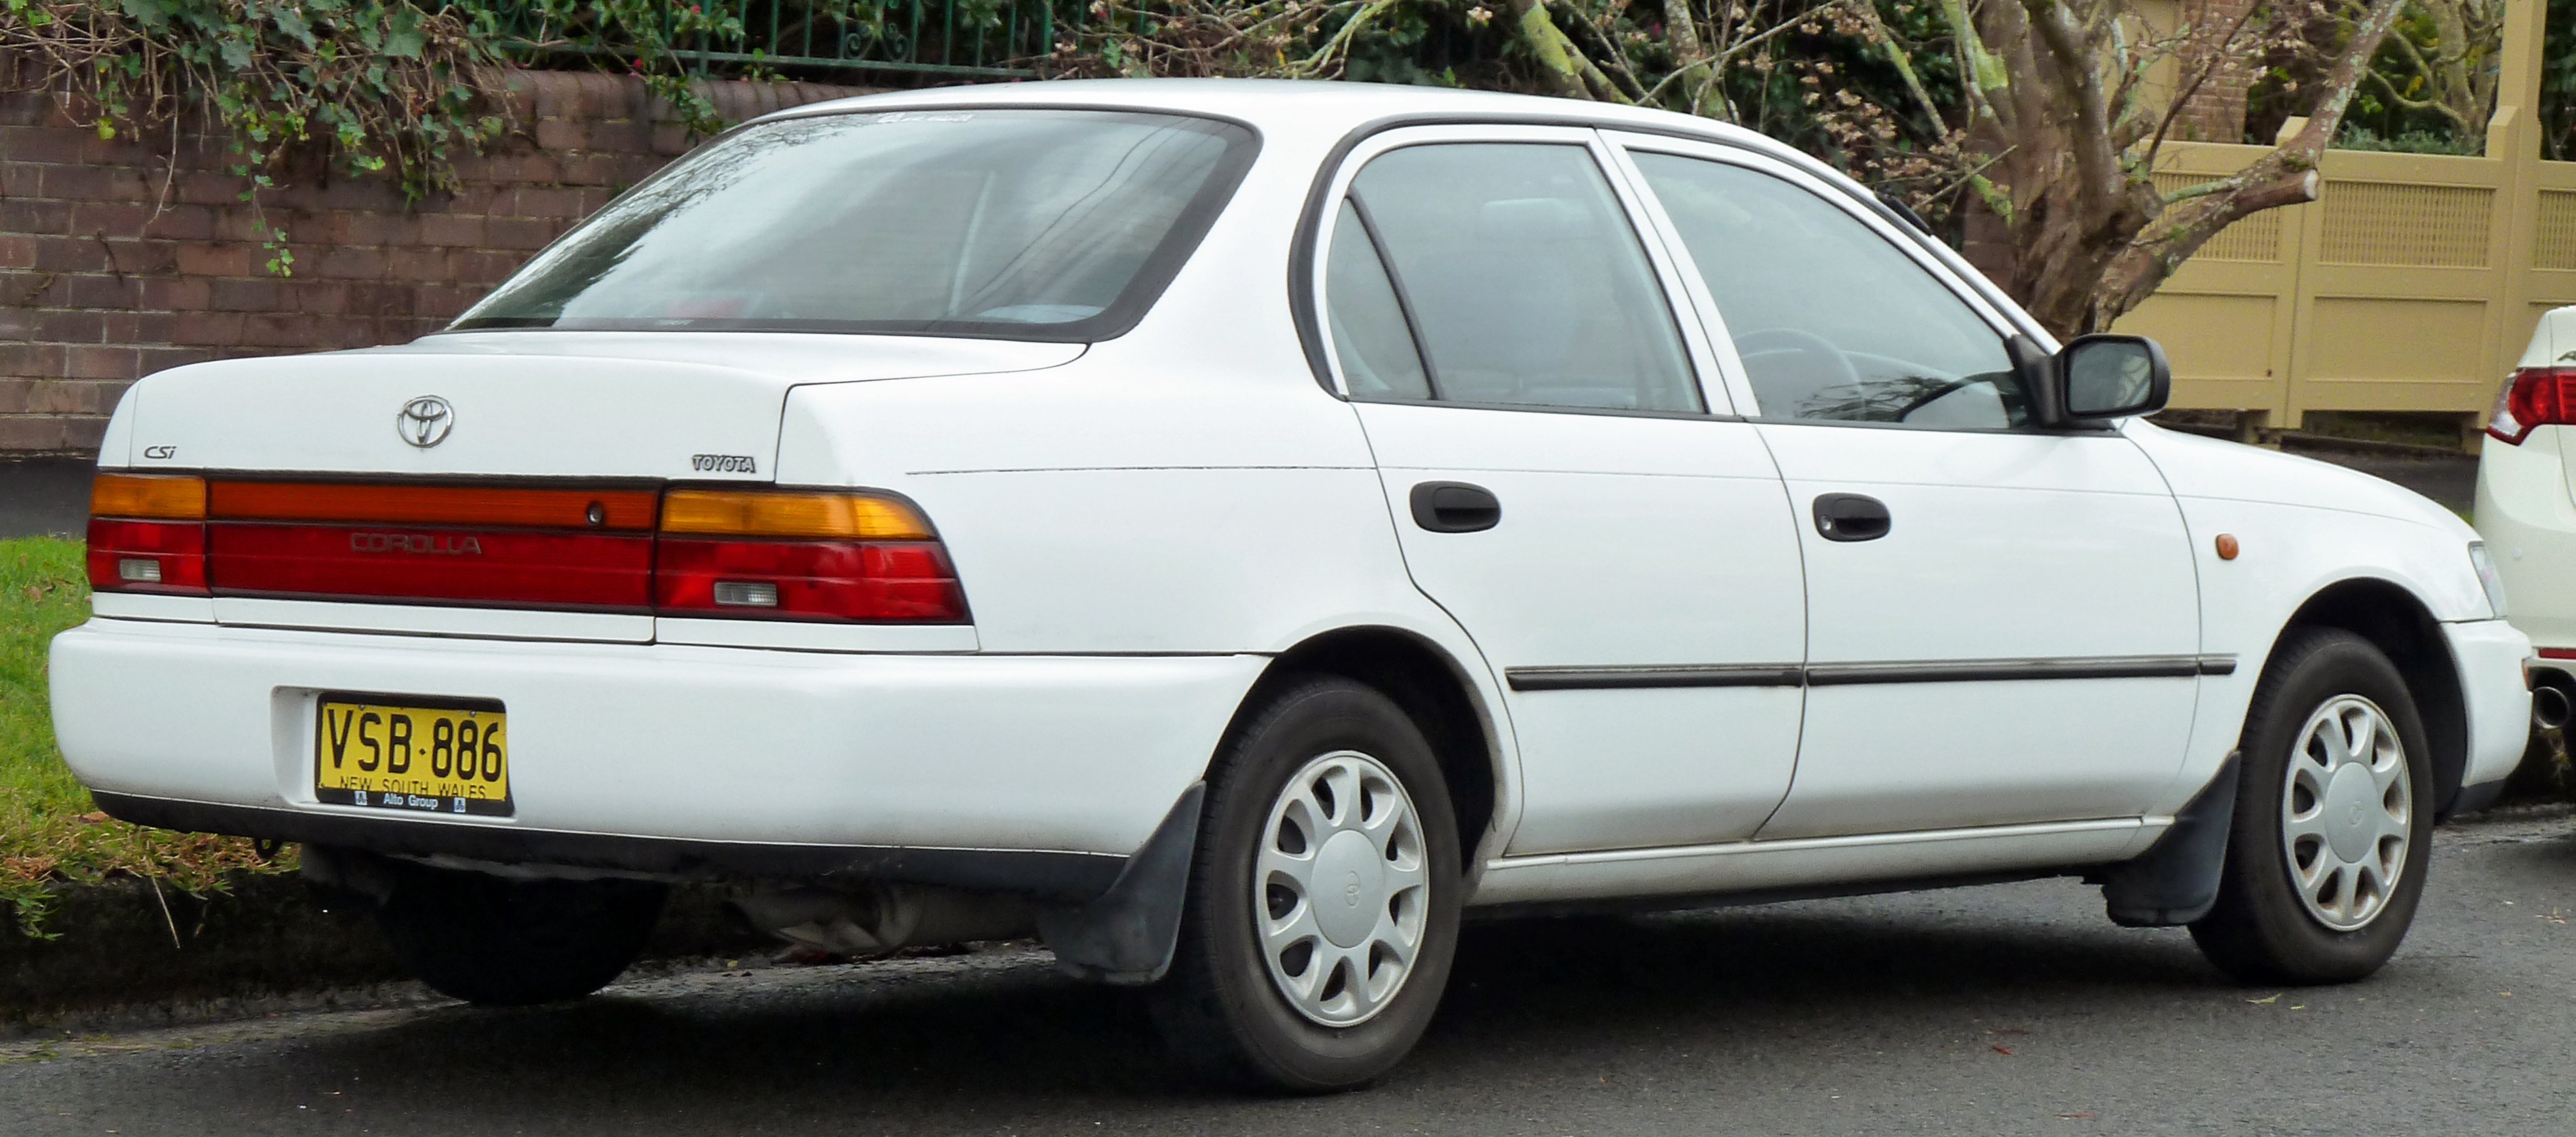 Toyota Corolla 2002 Exterior Rear Side View